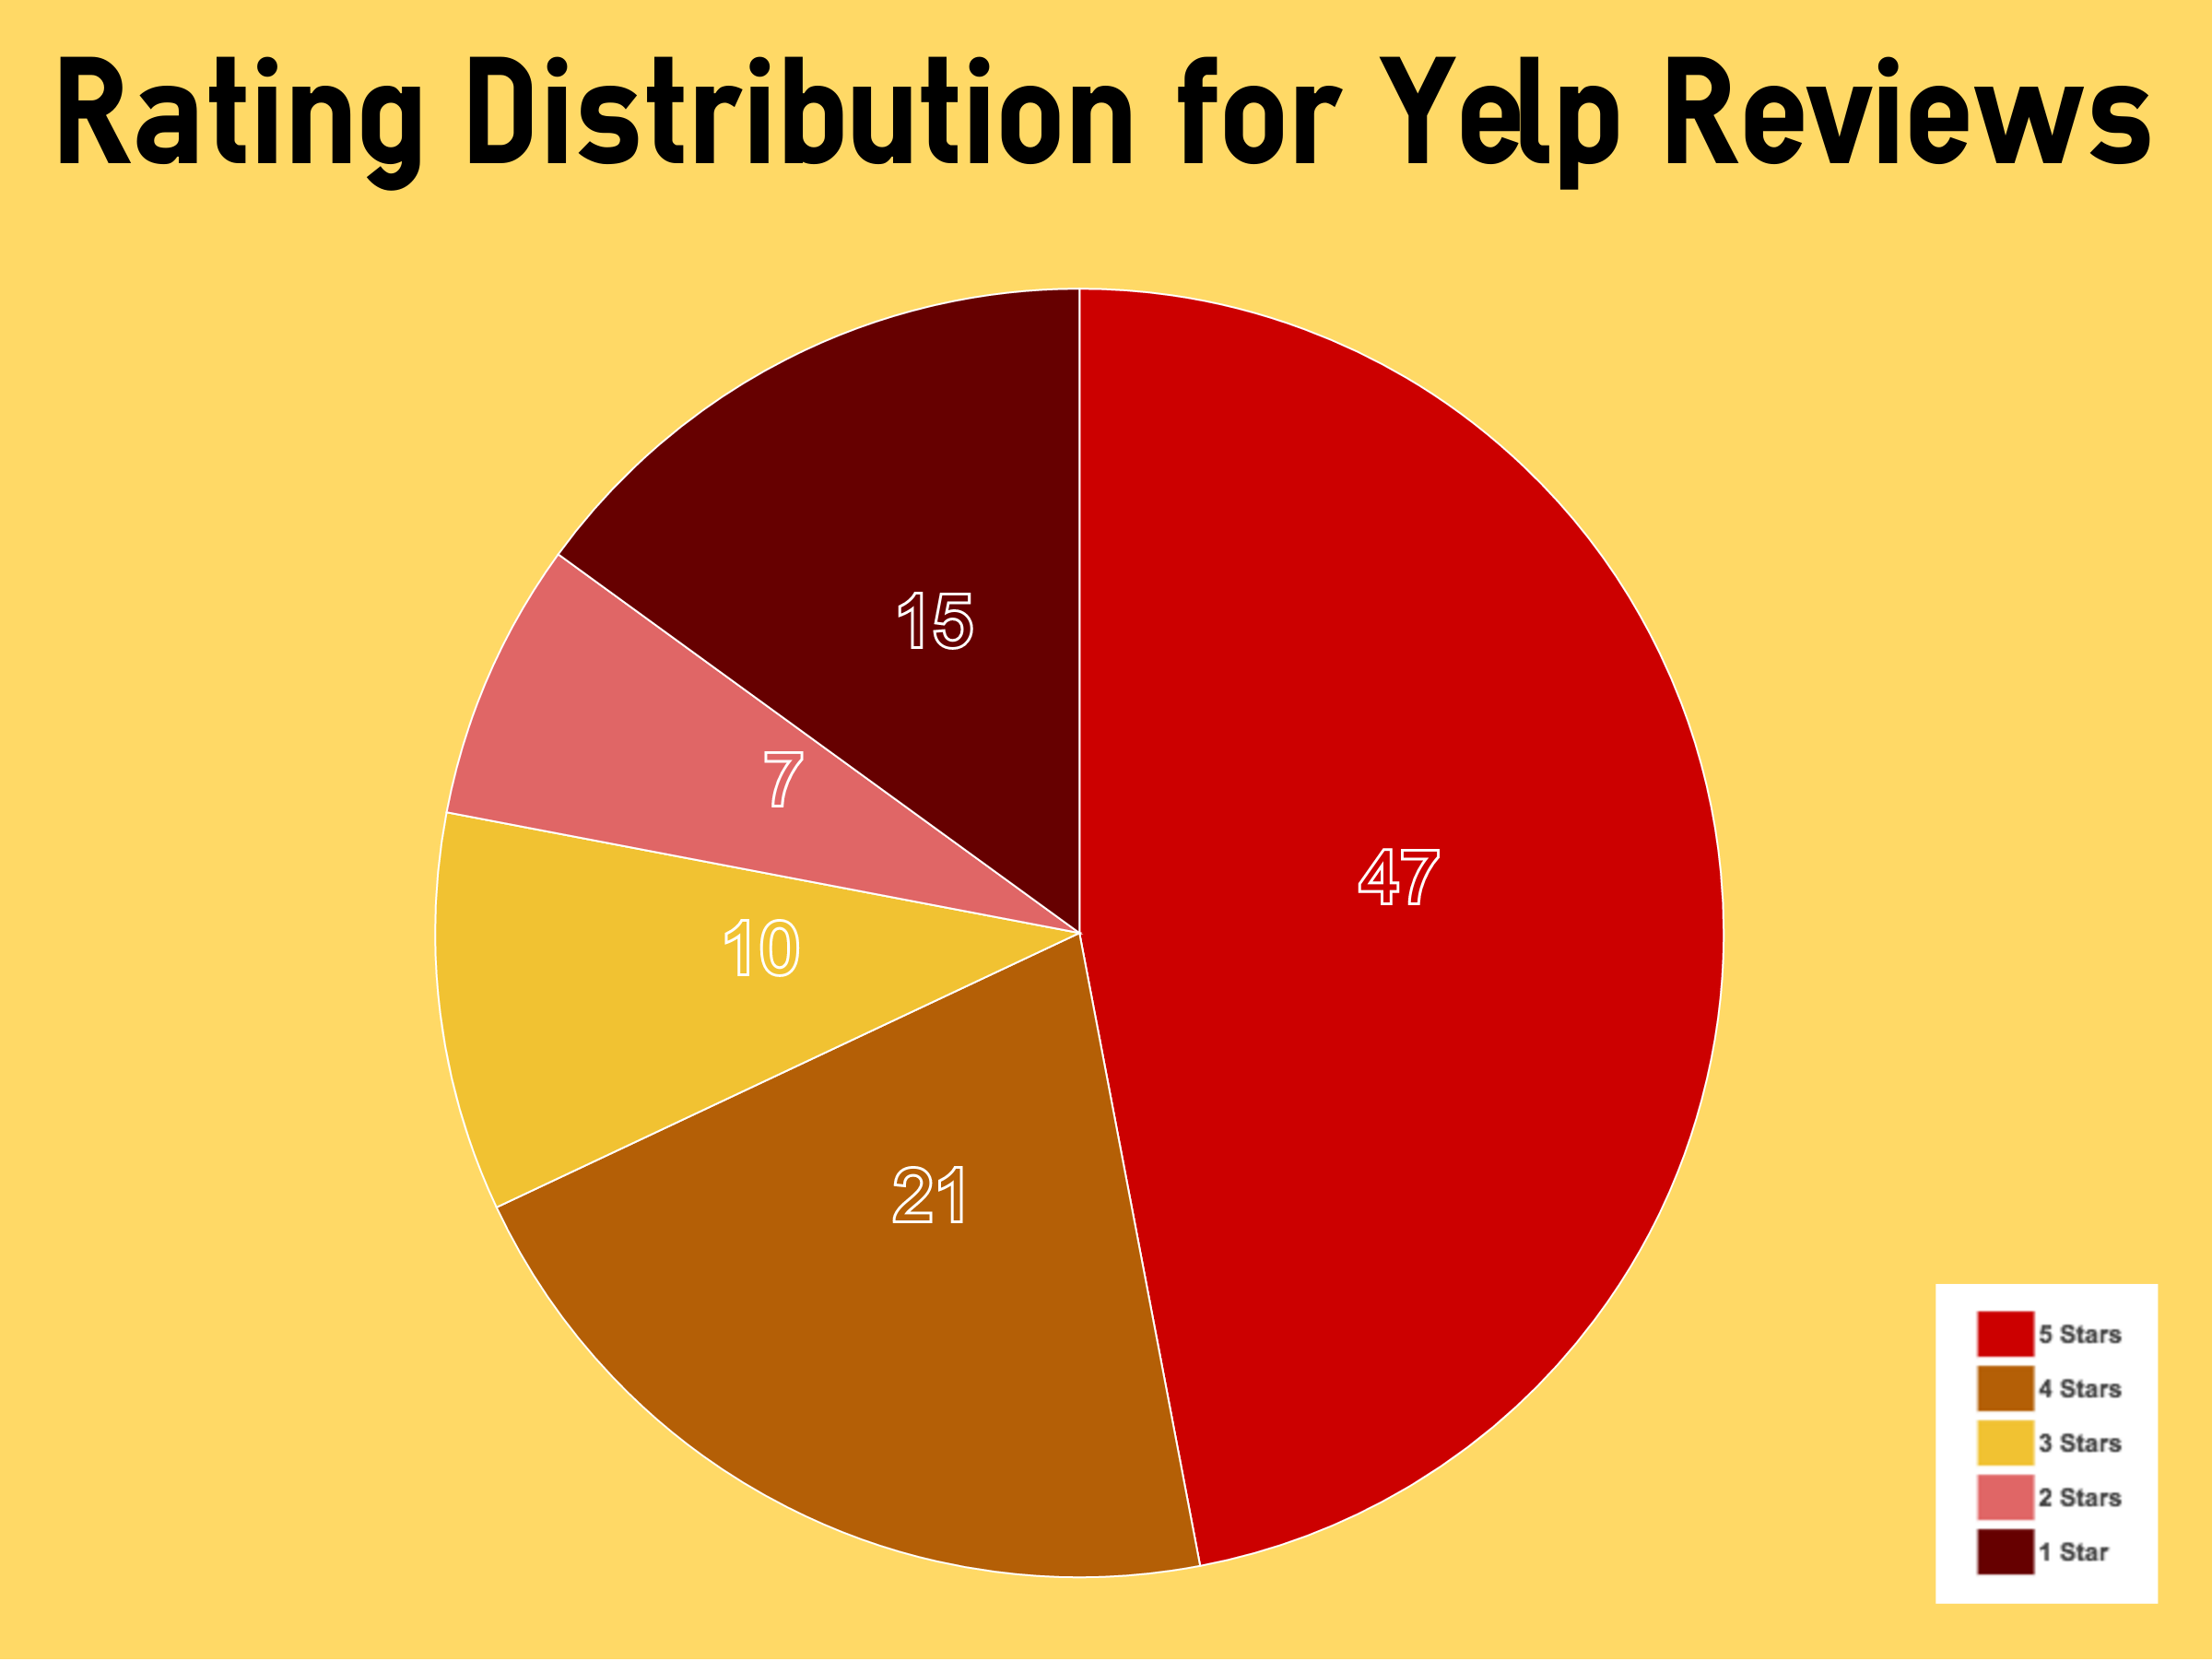 what percentage of Yelp reviews are 1-star?